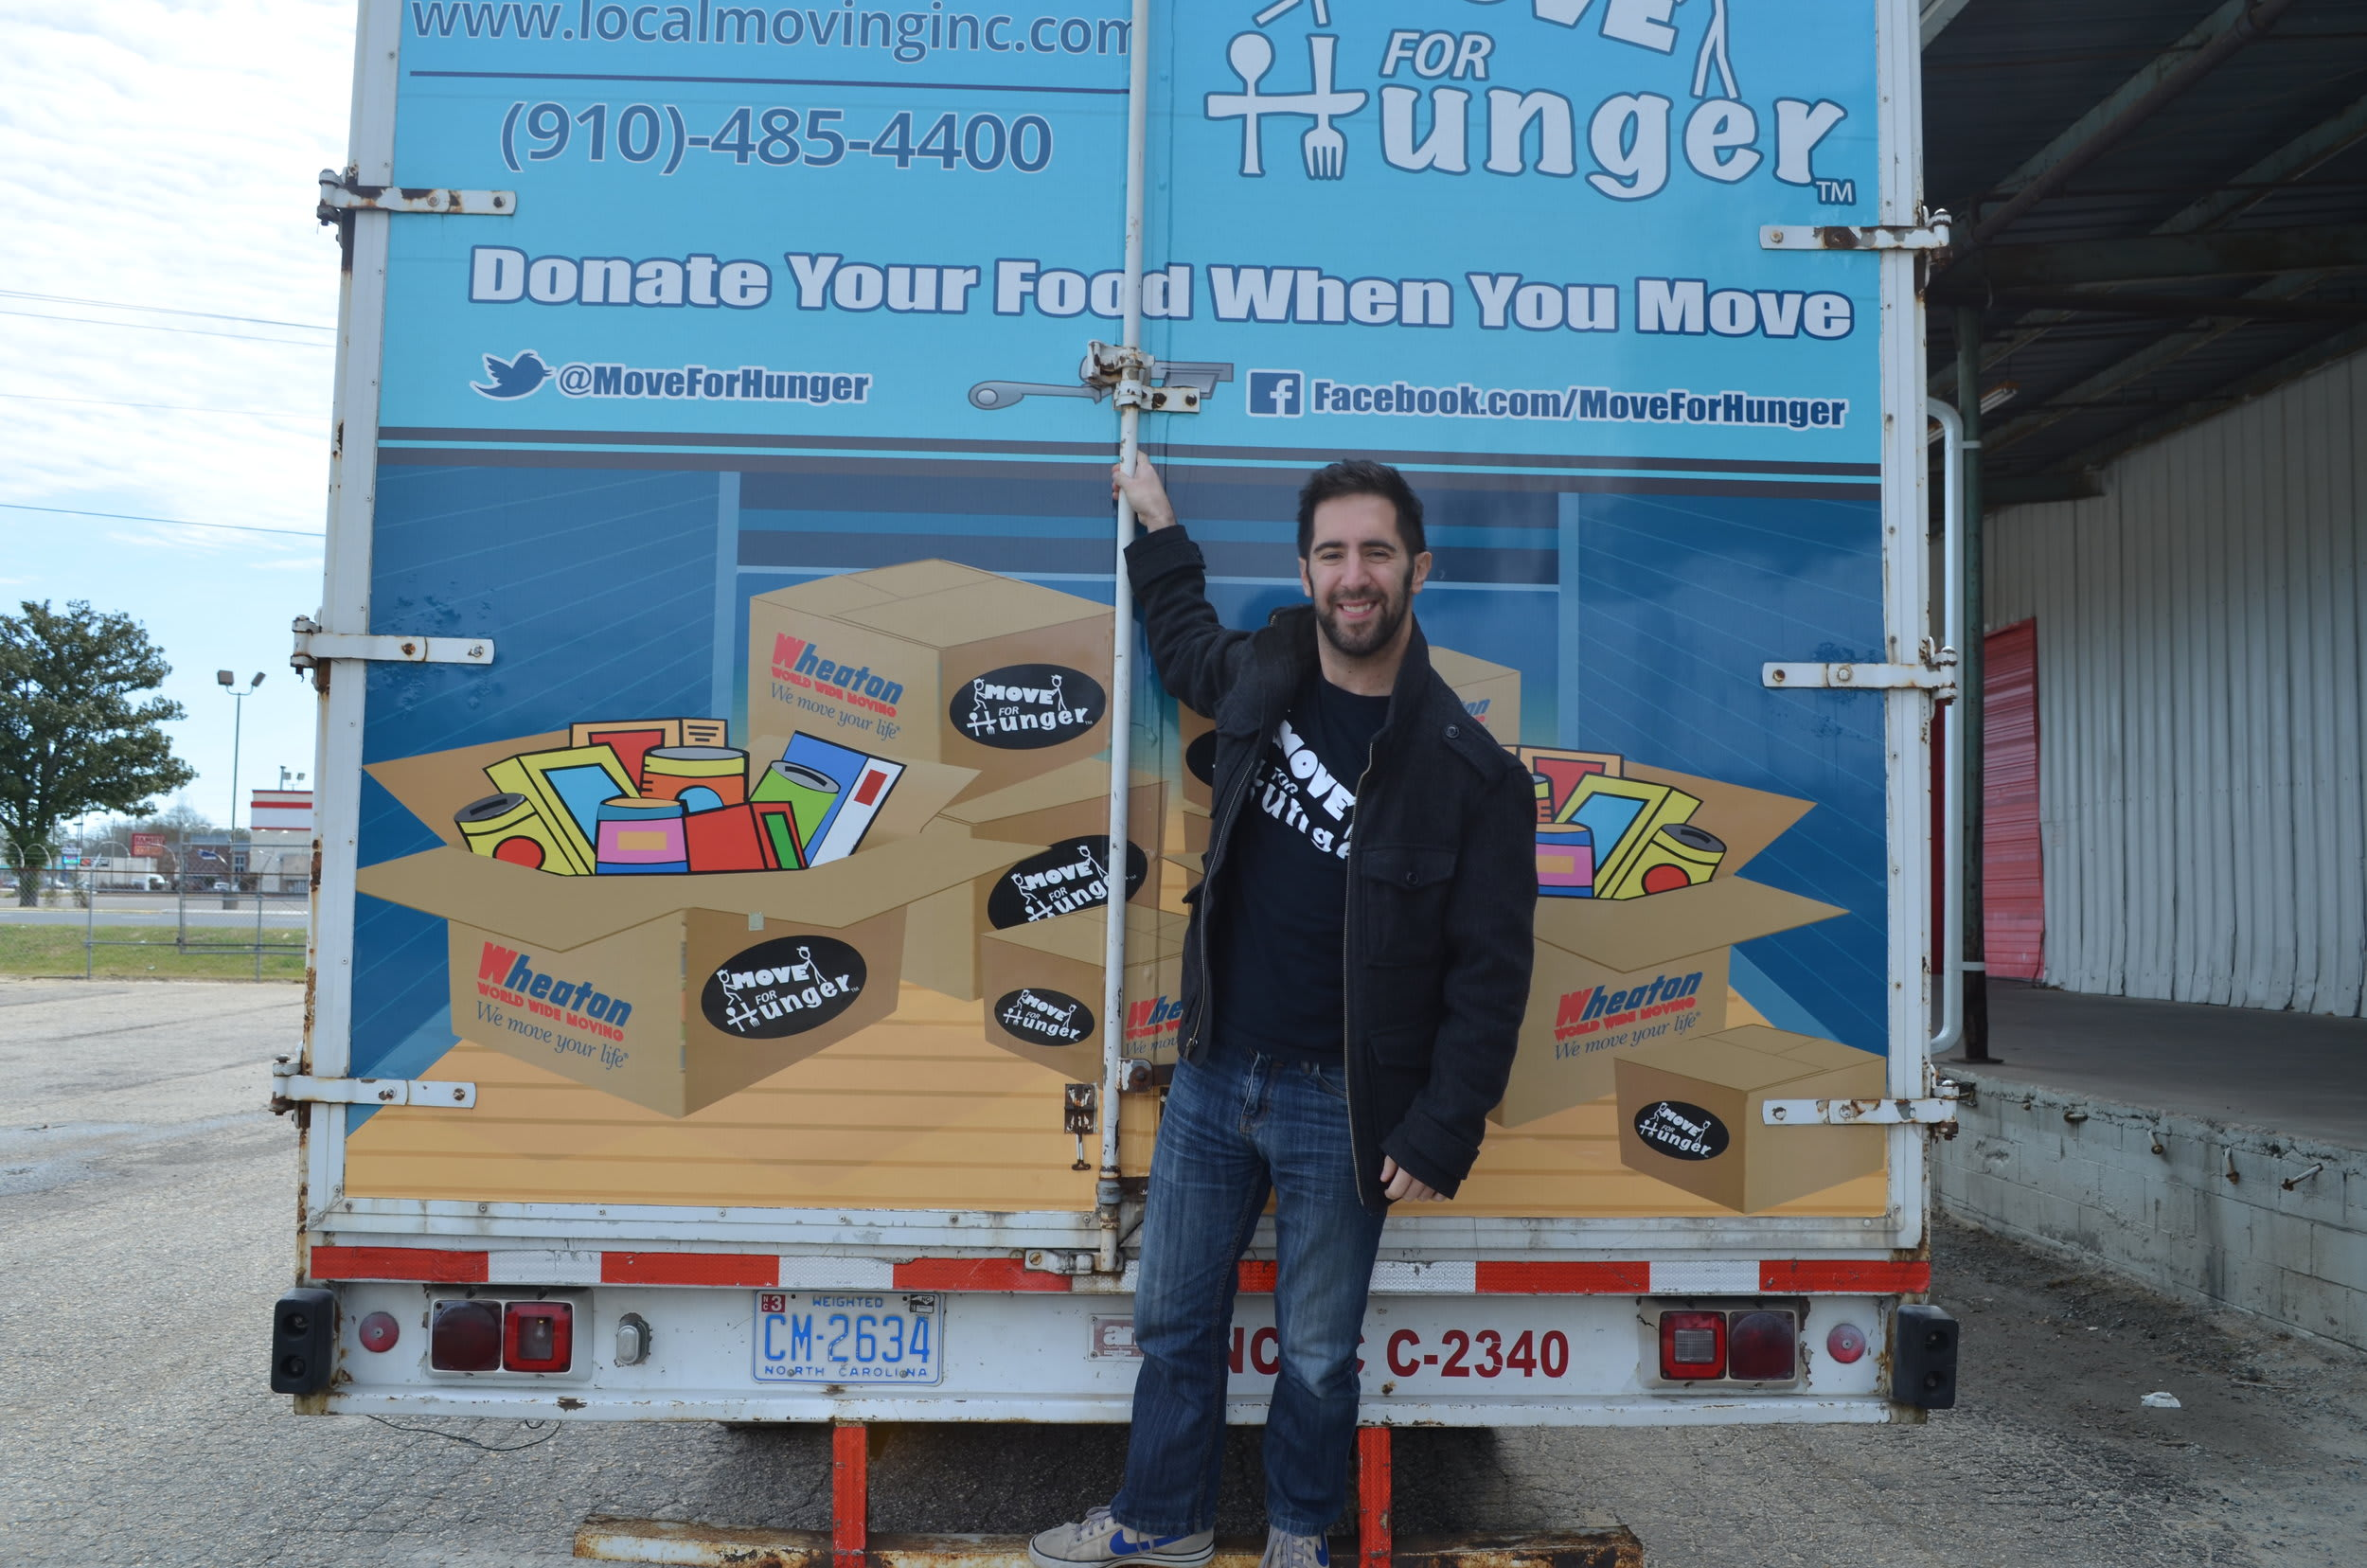 Updater and Move for Hunger Fight Hunger Together